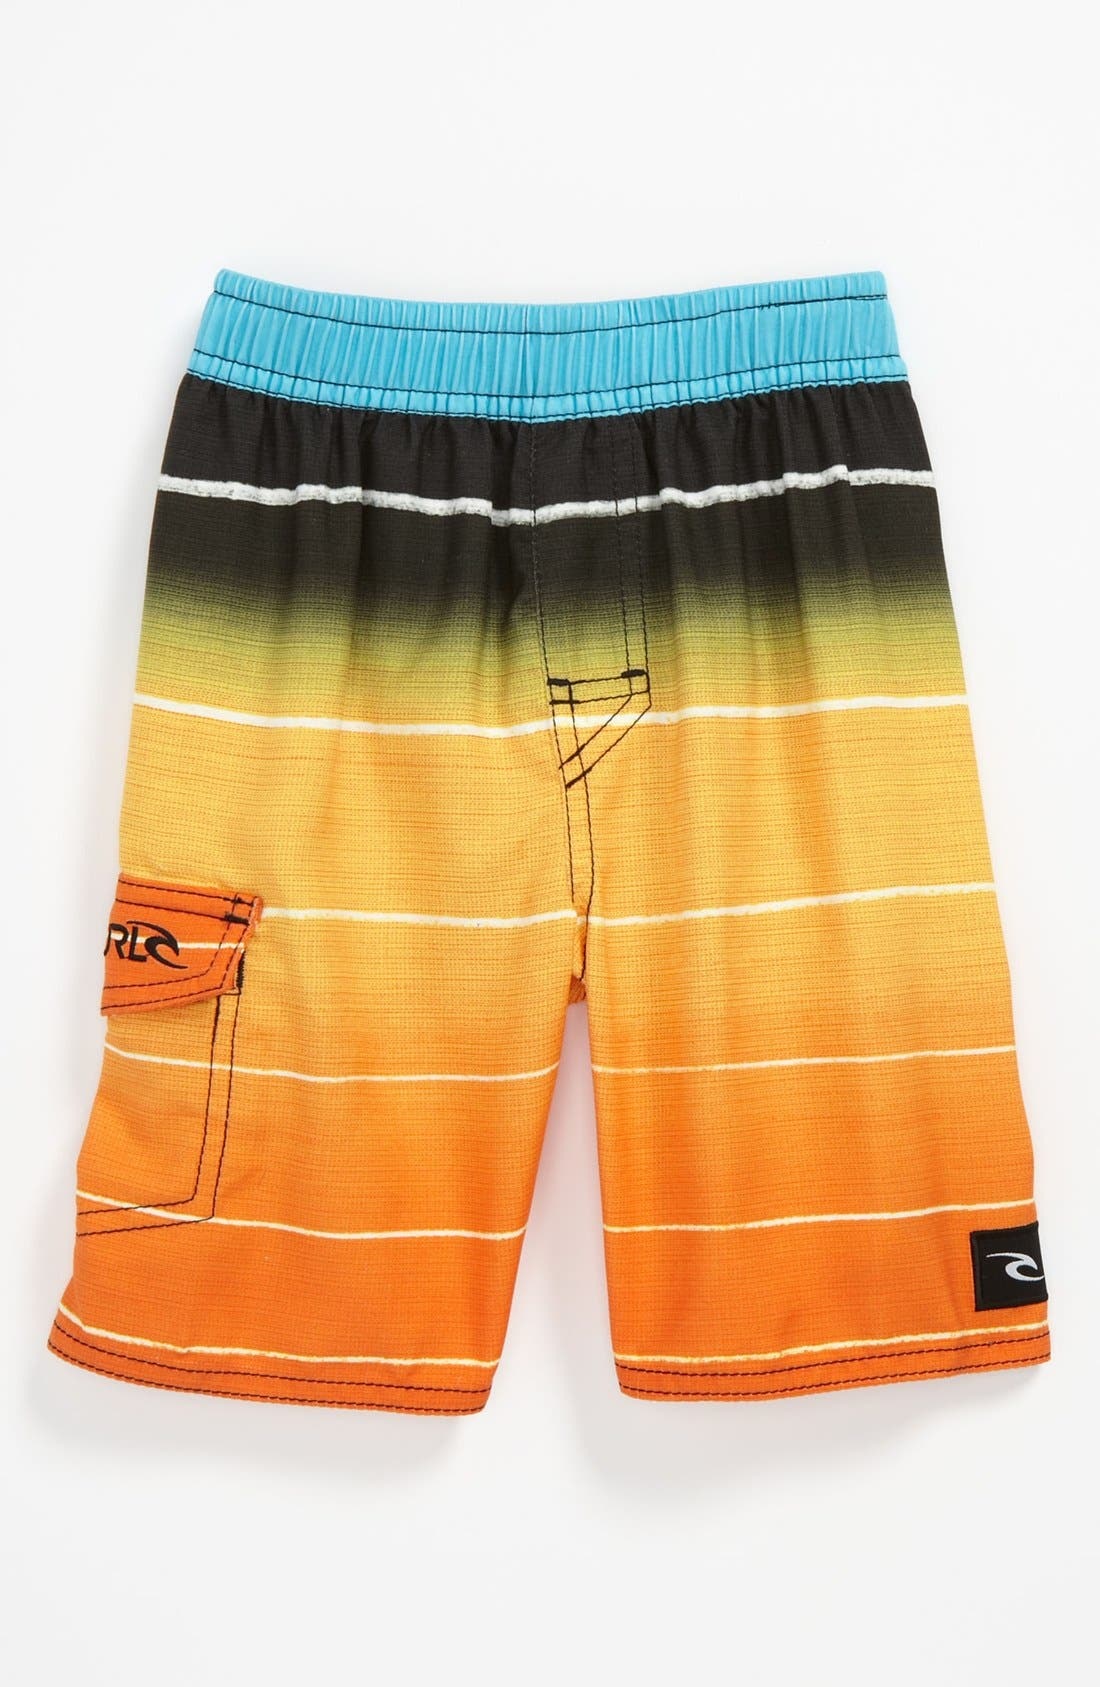 Alternate Image 1 Selected - Rip Curl 'Trippin' Volley Shorts (Toddler)